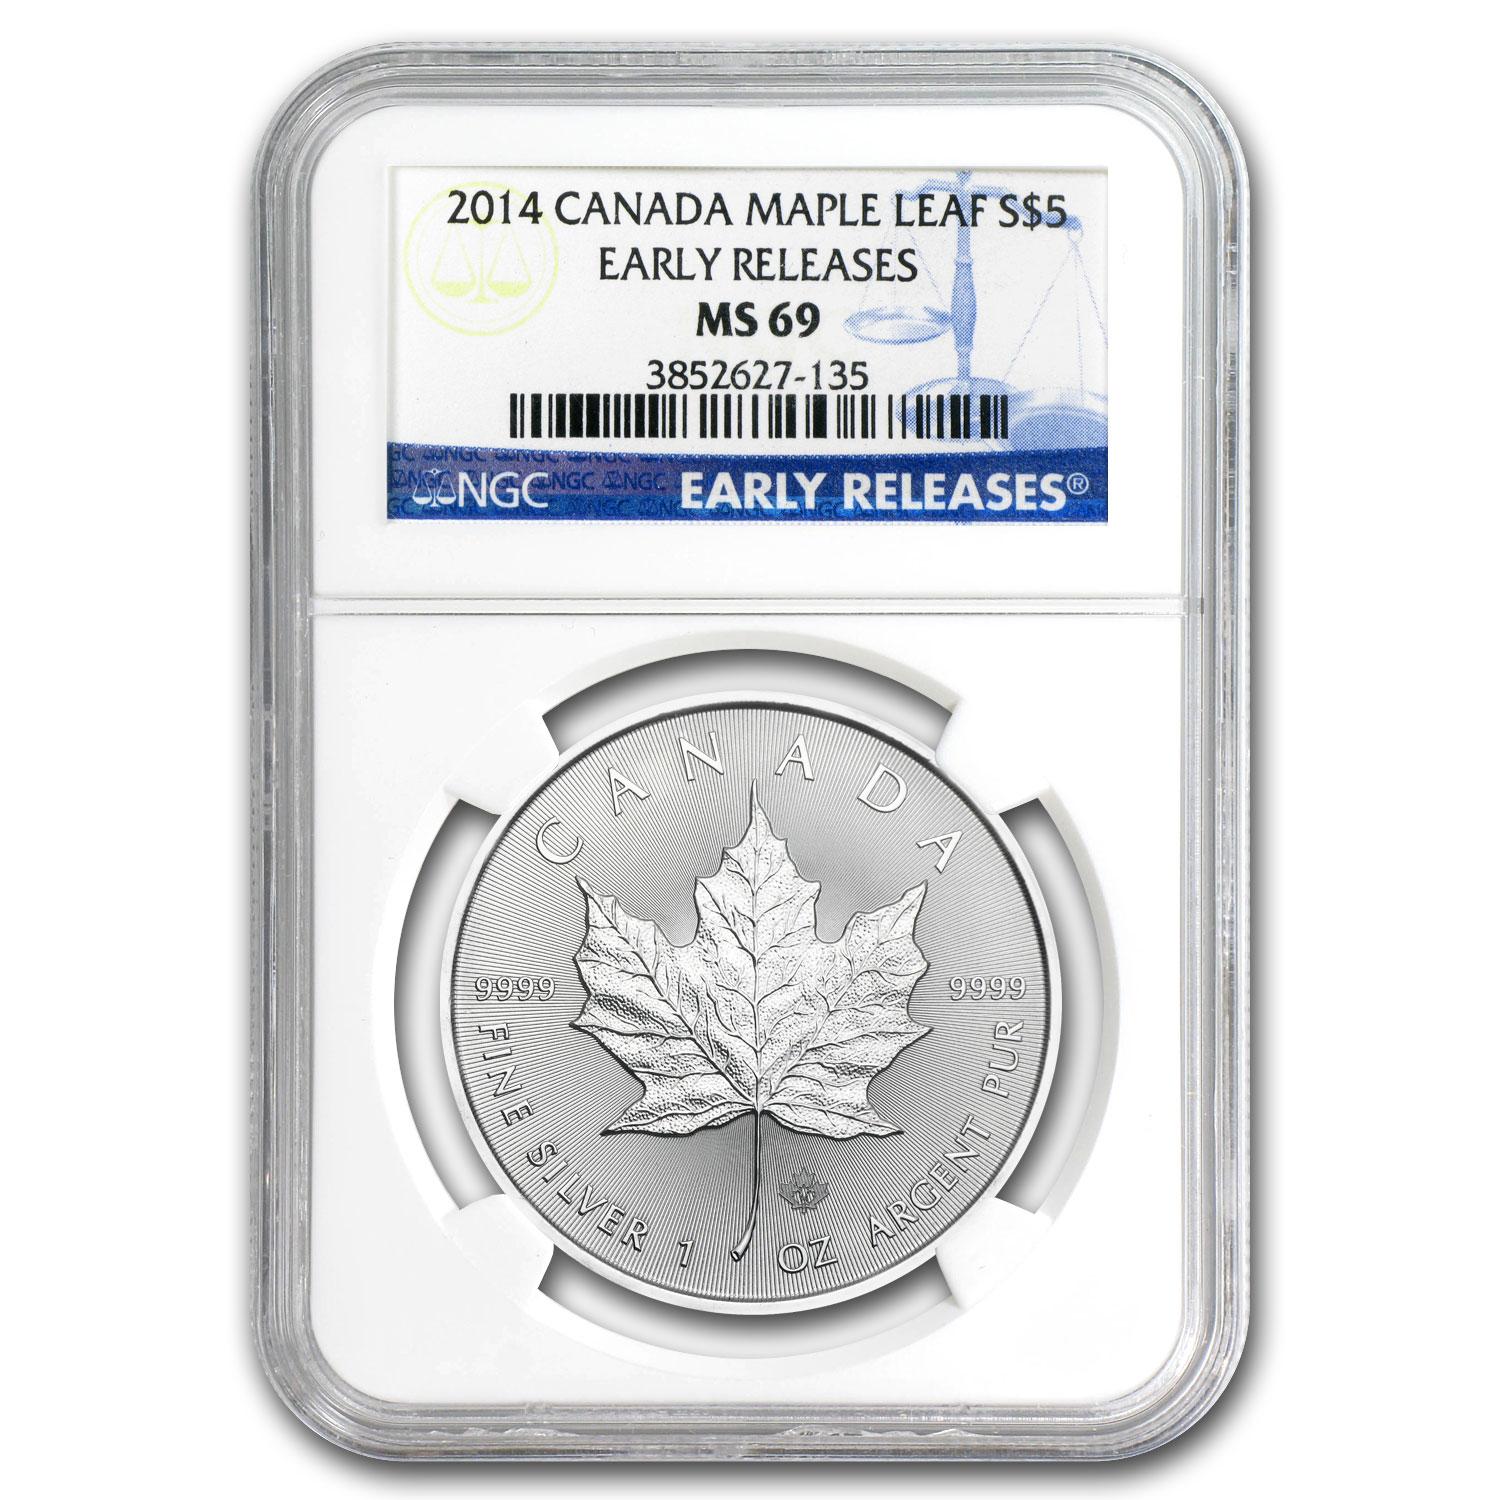 2014 Canada 1 oz Silver Maple Leaf MS-69 NGC (Early Releases)